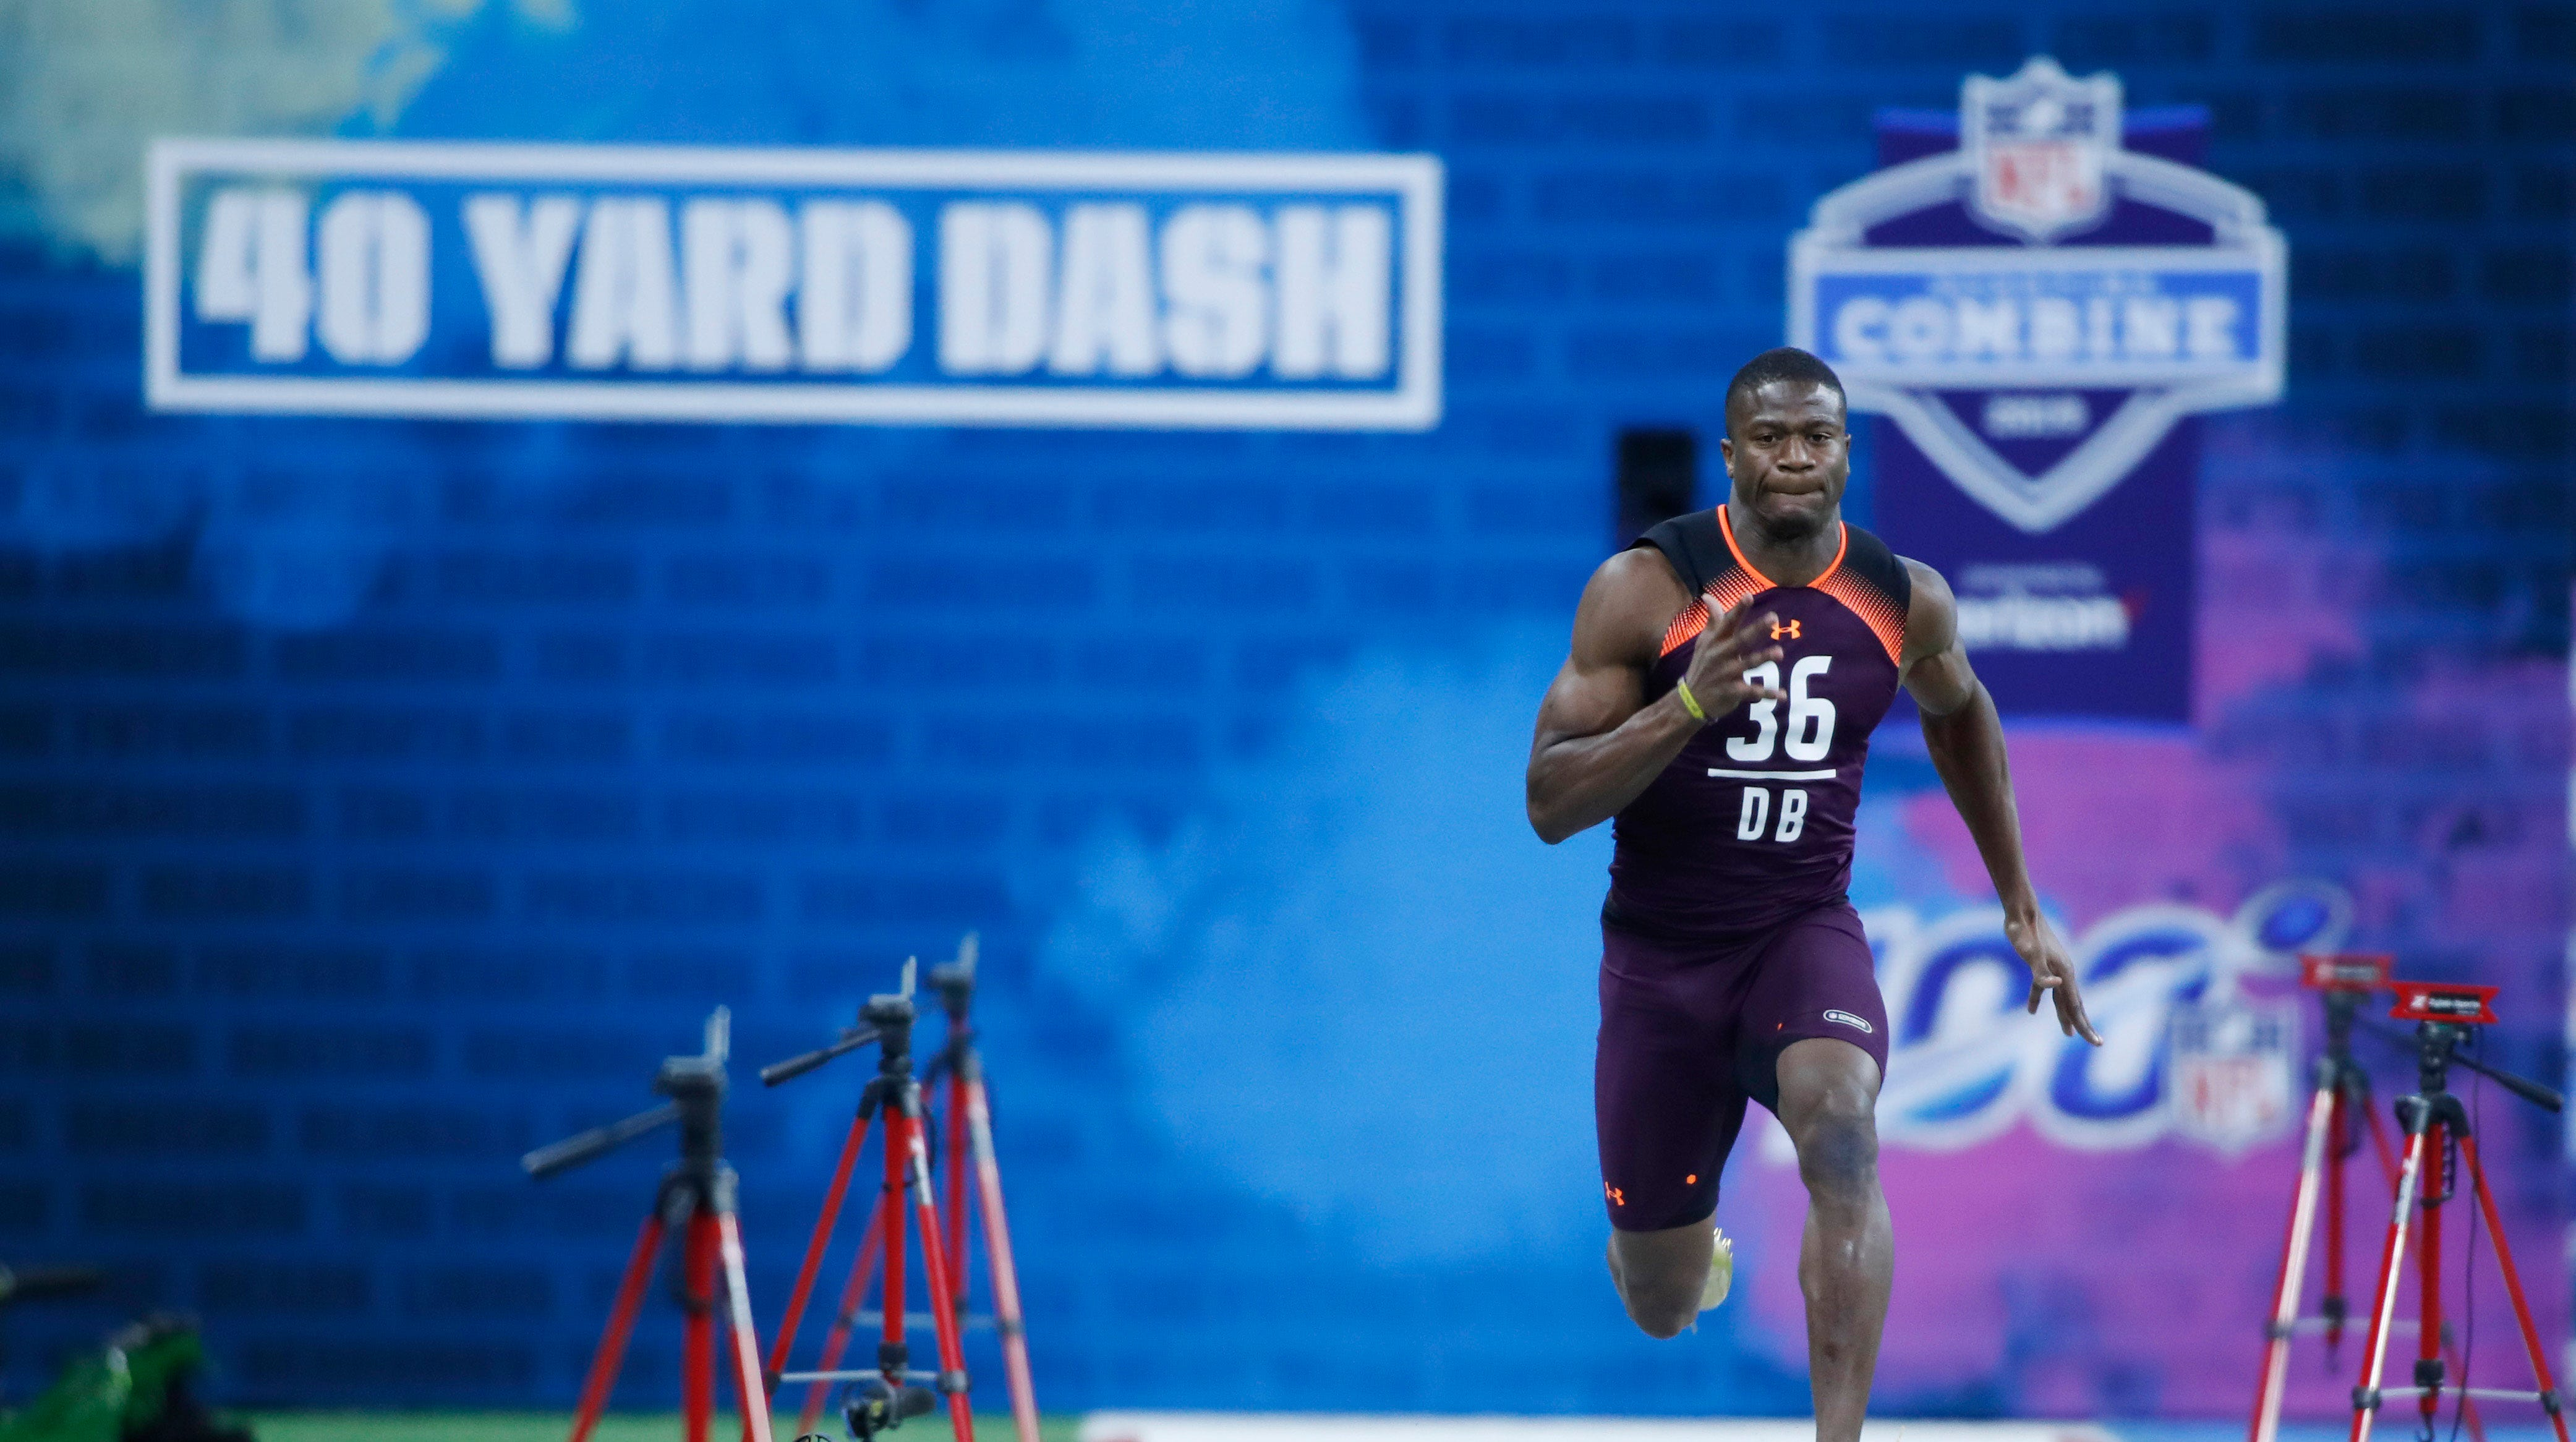 Mar 4, 2019; Indianapolis, IN, USA; Temple defensive back Rock Ya-Sin (DB36) runs the 40 yard dash during the 2019 NFL Combine at Lucas Oil Stadium. Mandatory Credit: Brian Spurlock-USA TODAY Sports